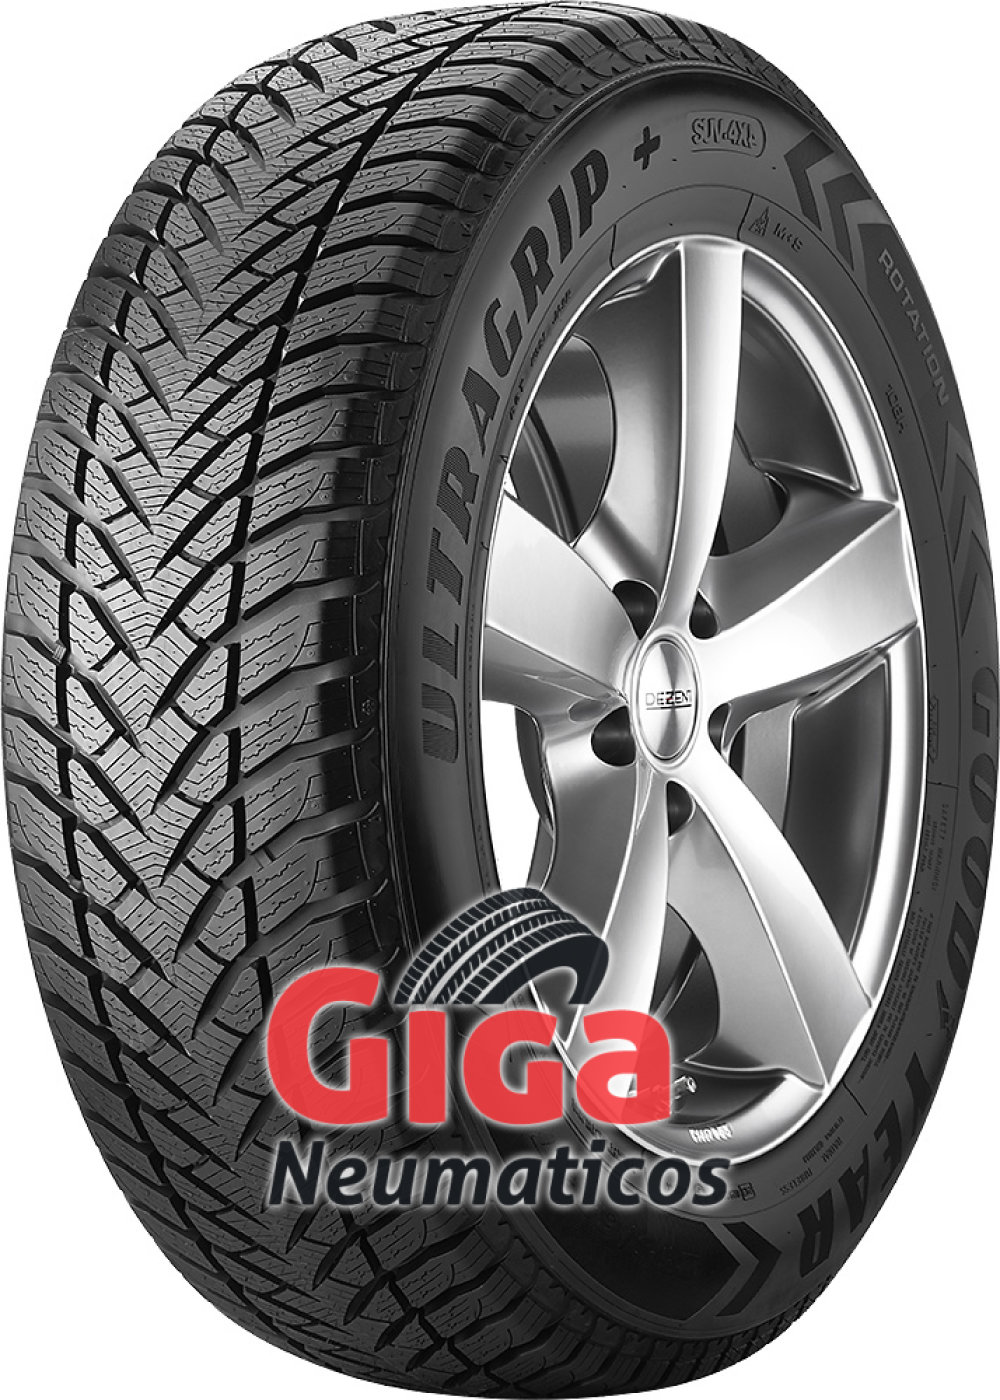 Insa Turbo WINTER GRIP 195//65 R15 91T recauchutados